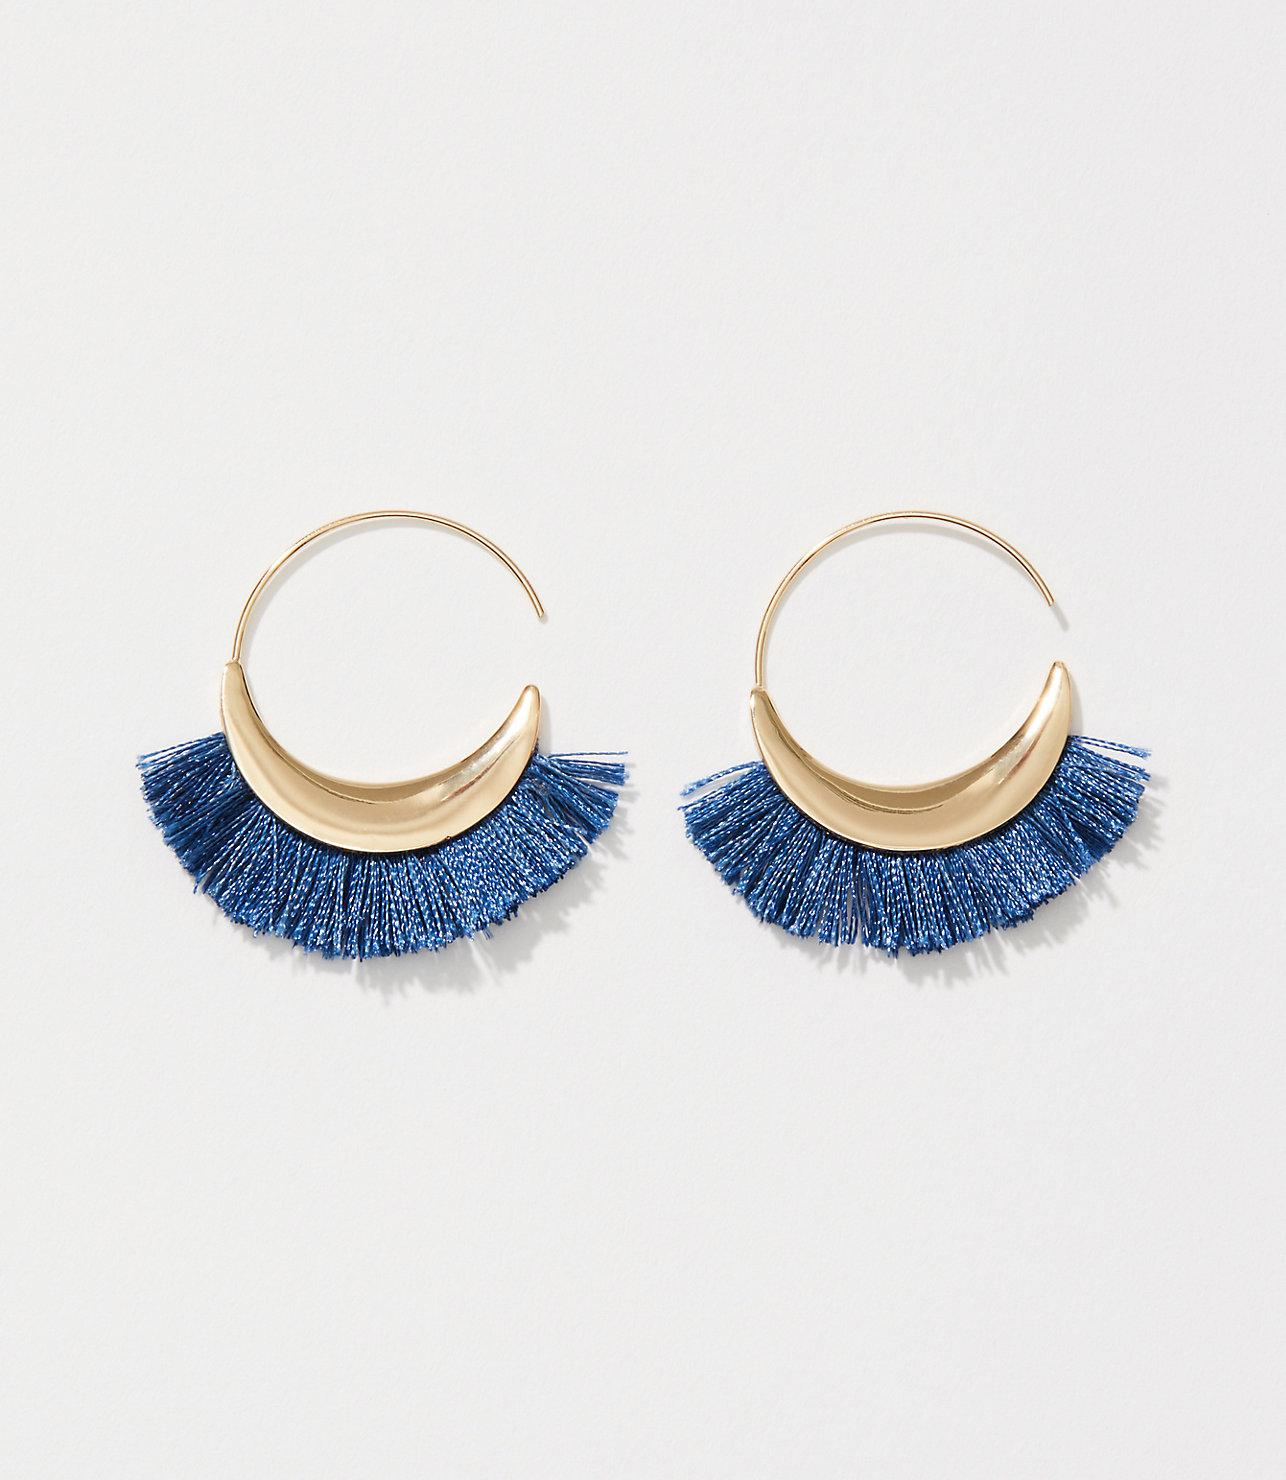 7de57f33a LOFT Fringe Hoop Earrings in Blue - Lyst